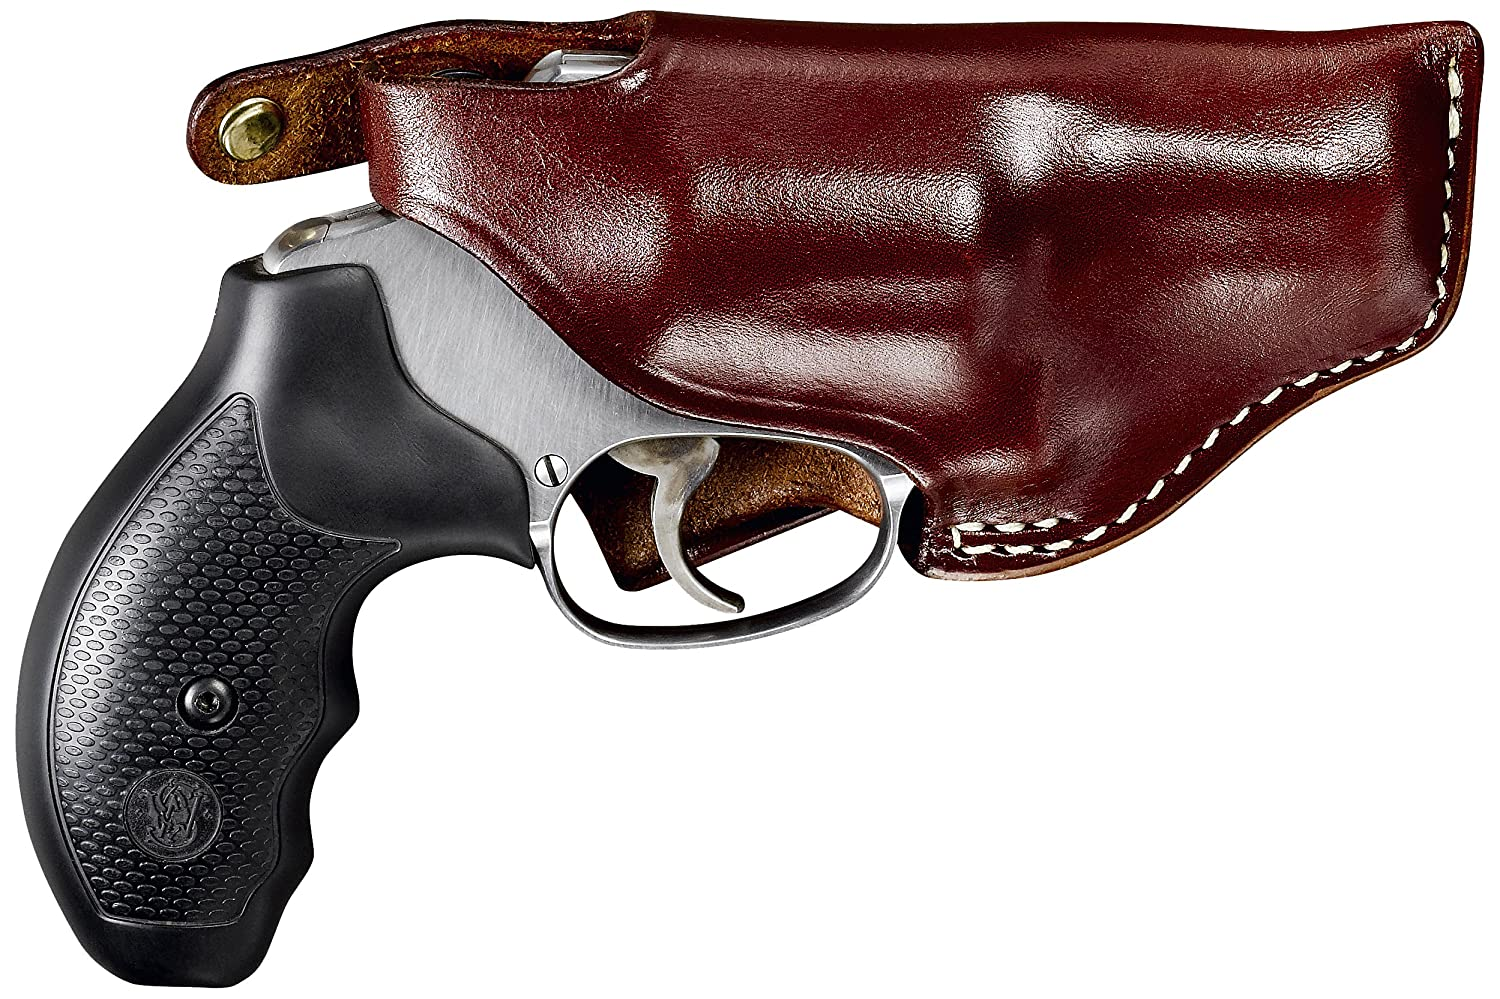 65 431 K Marco//Taurus 660 Fobus Standard Holster RH Paddle SW4/Smith /& Wesson 4/L